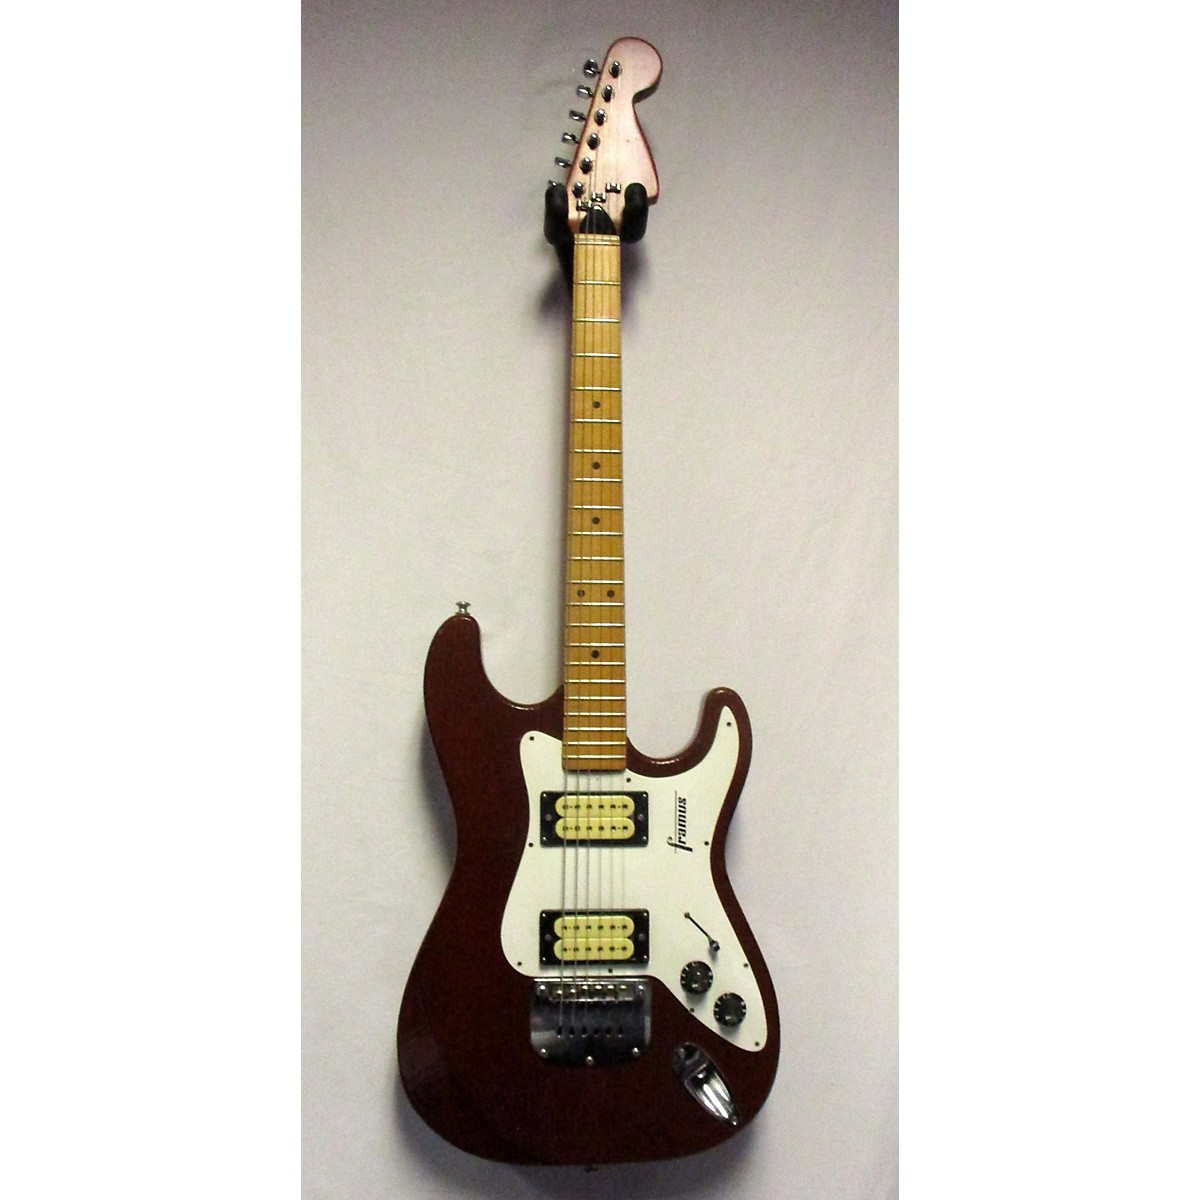 Framus 1970s S Style Guitar Solid Body Electric Guitar